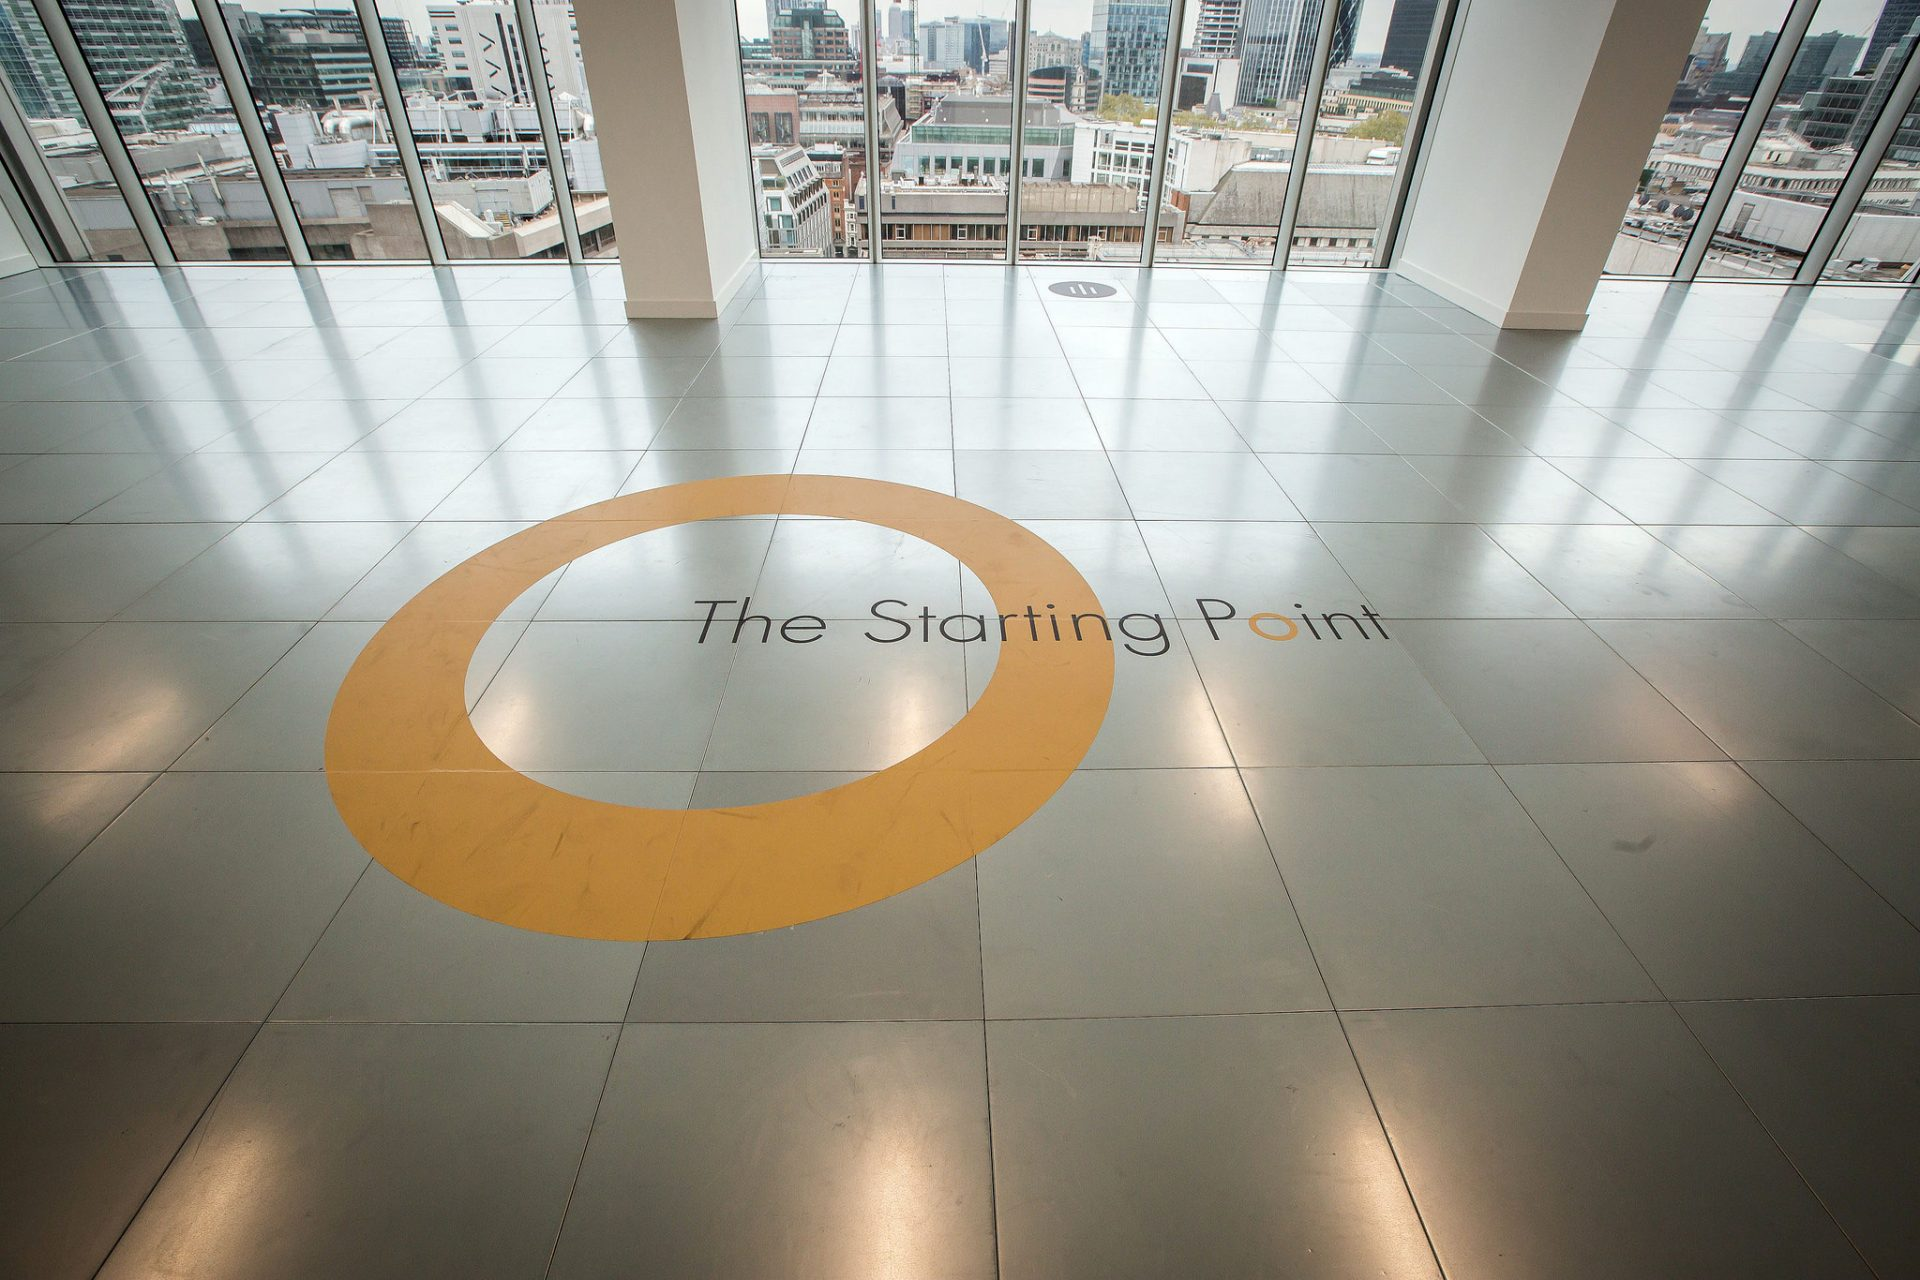 Event display floor vinyl at CityPoint by Octink